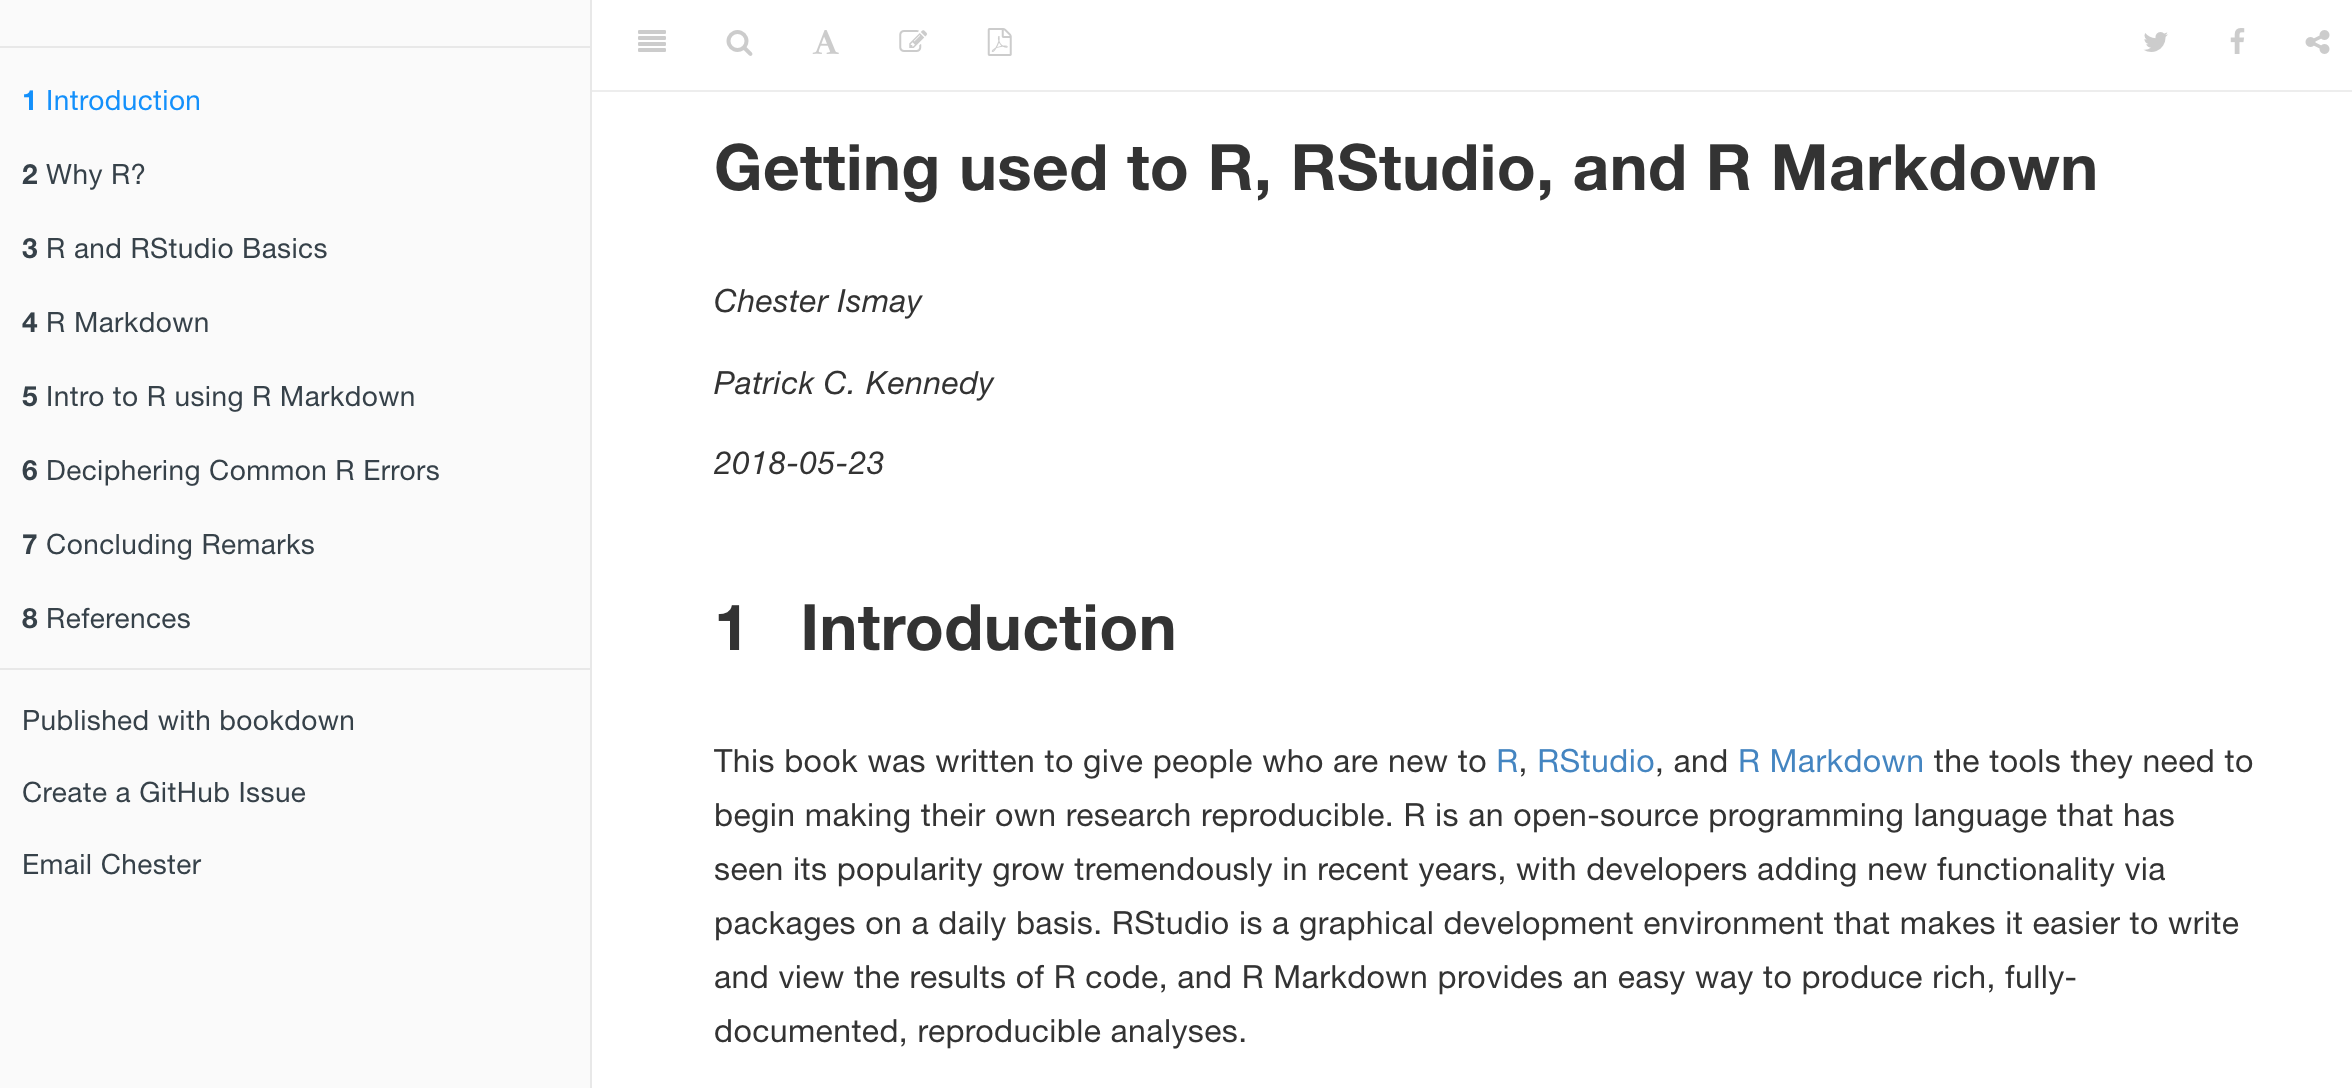 Preview of 'Getting Used to R, RStudio, and R Markdown'.